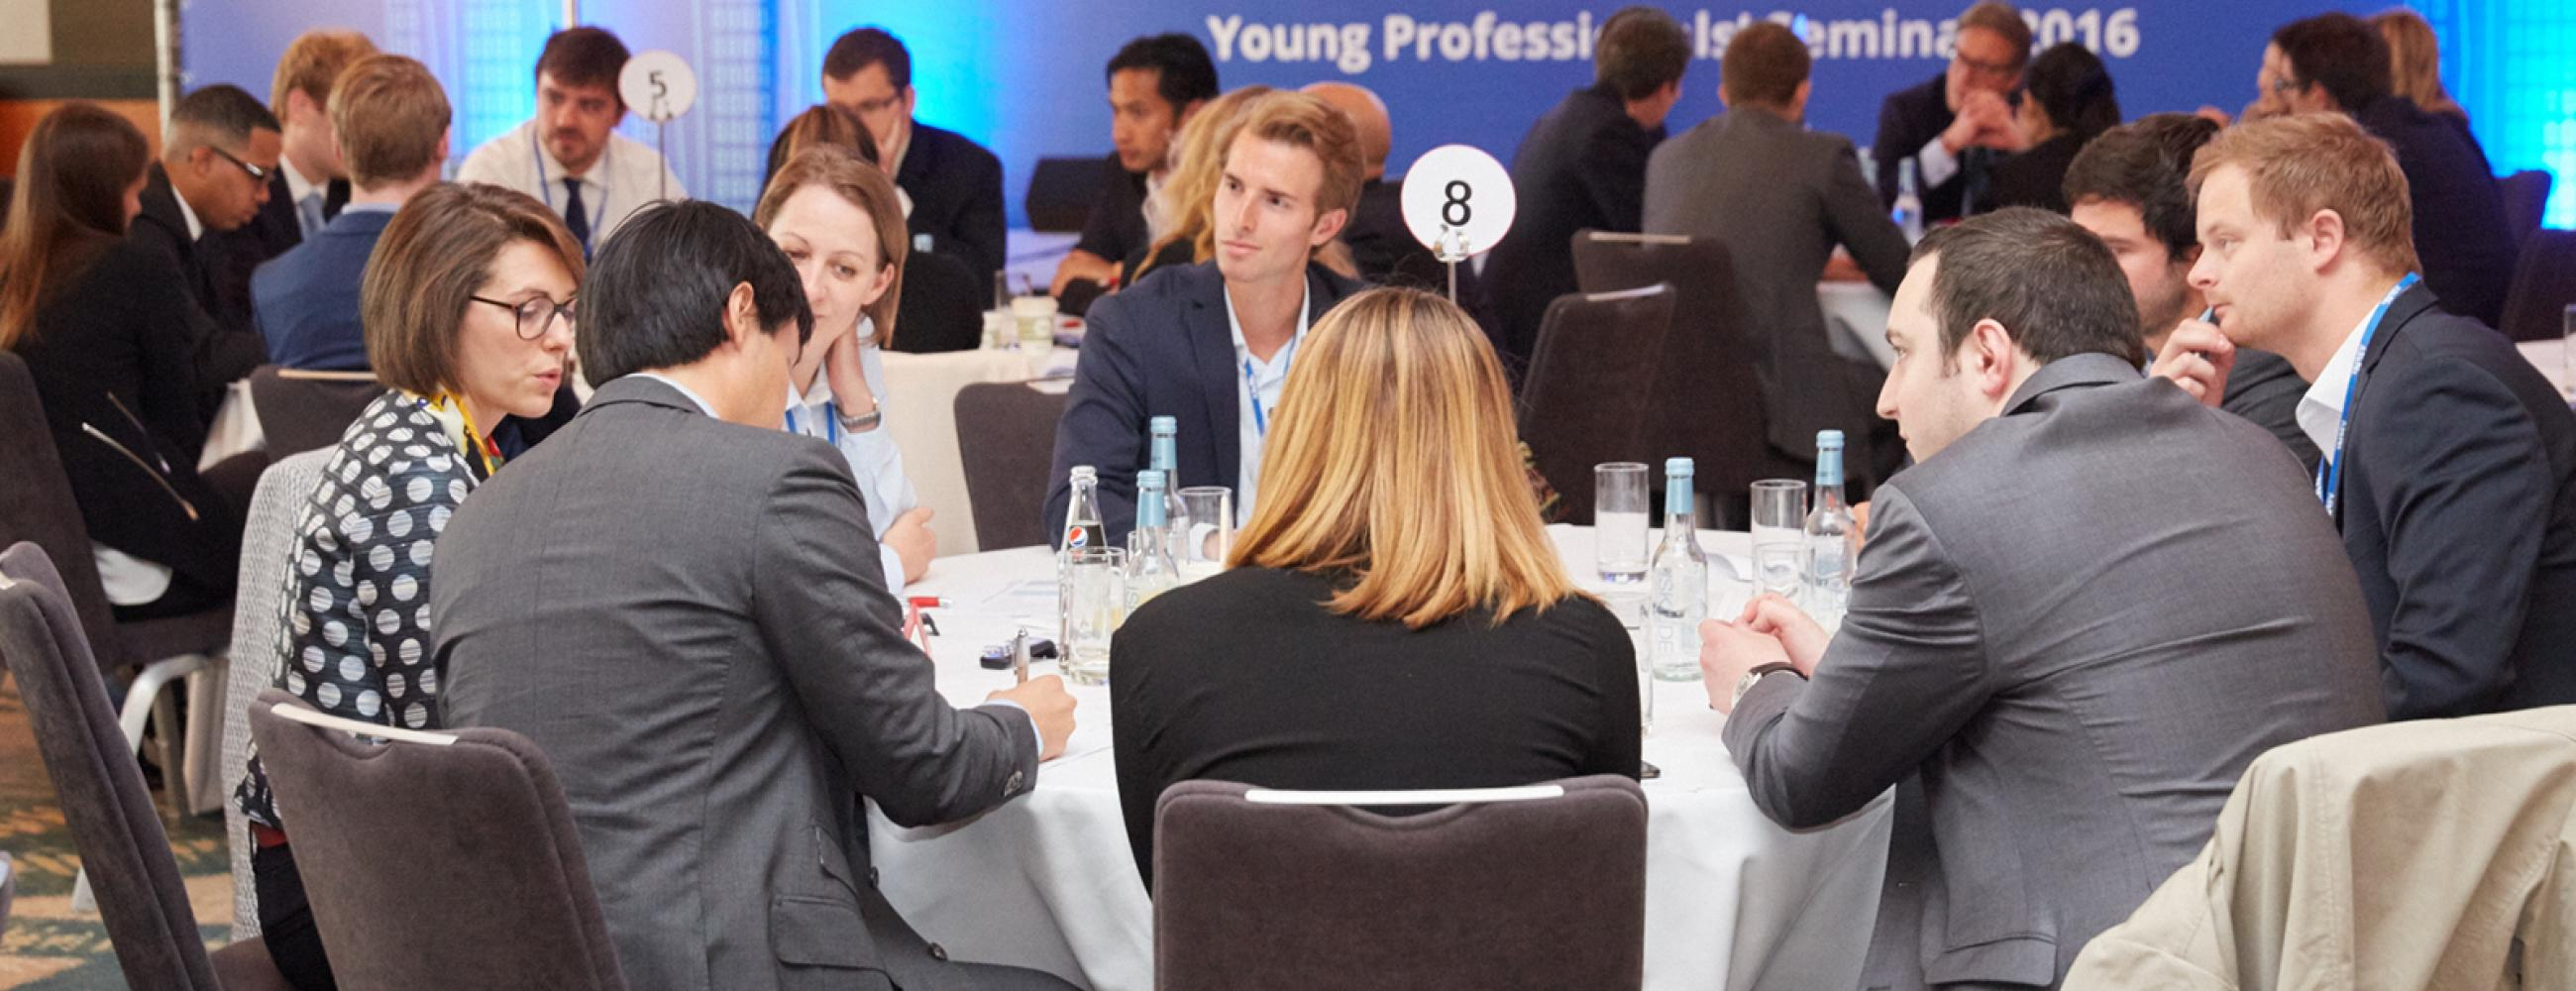 Workshop and case - Young Professionals Seminar 2016